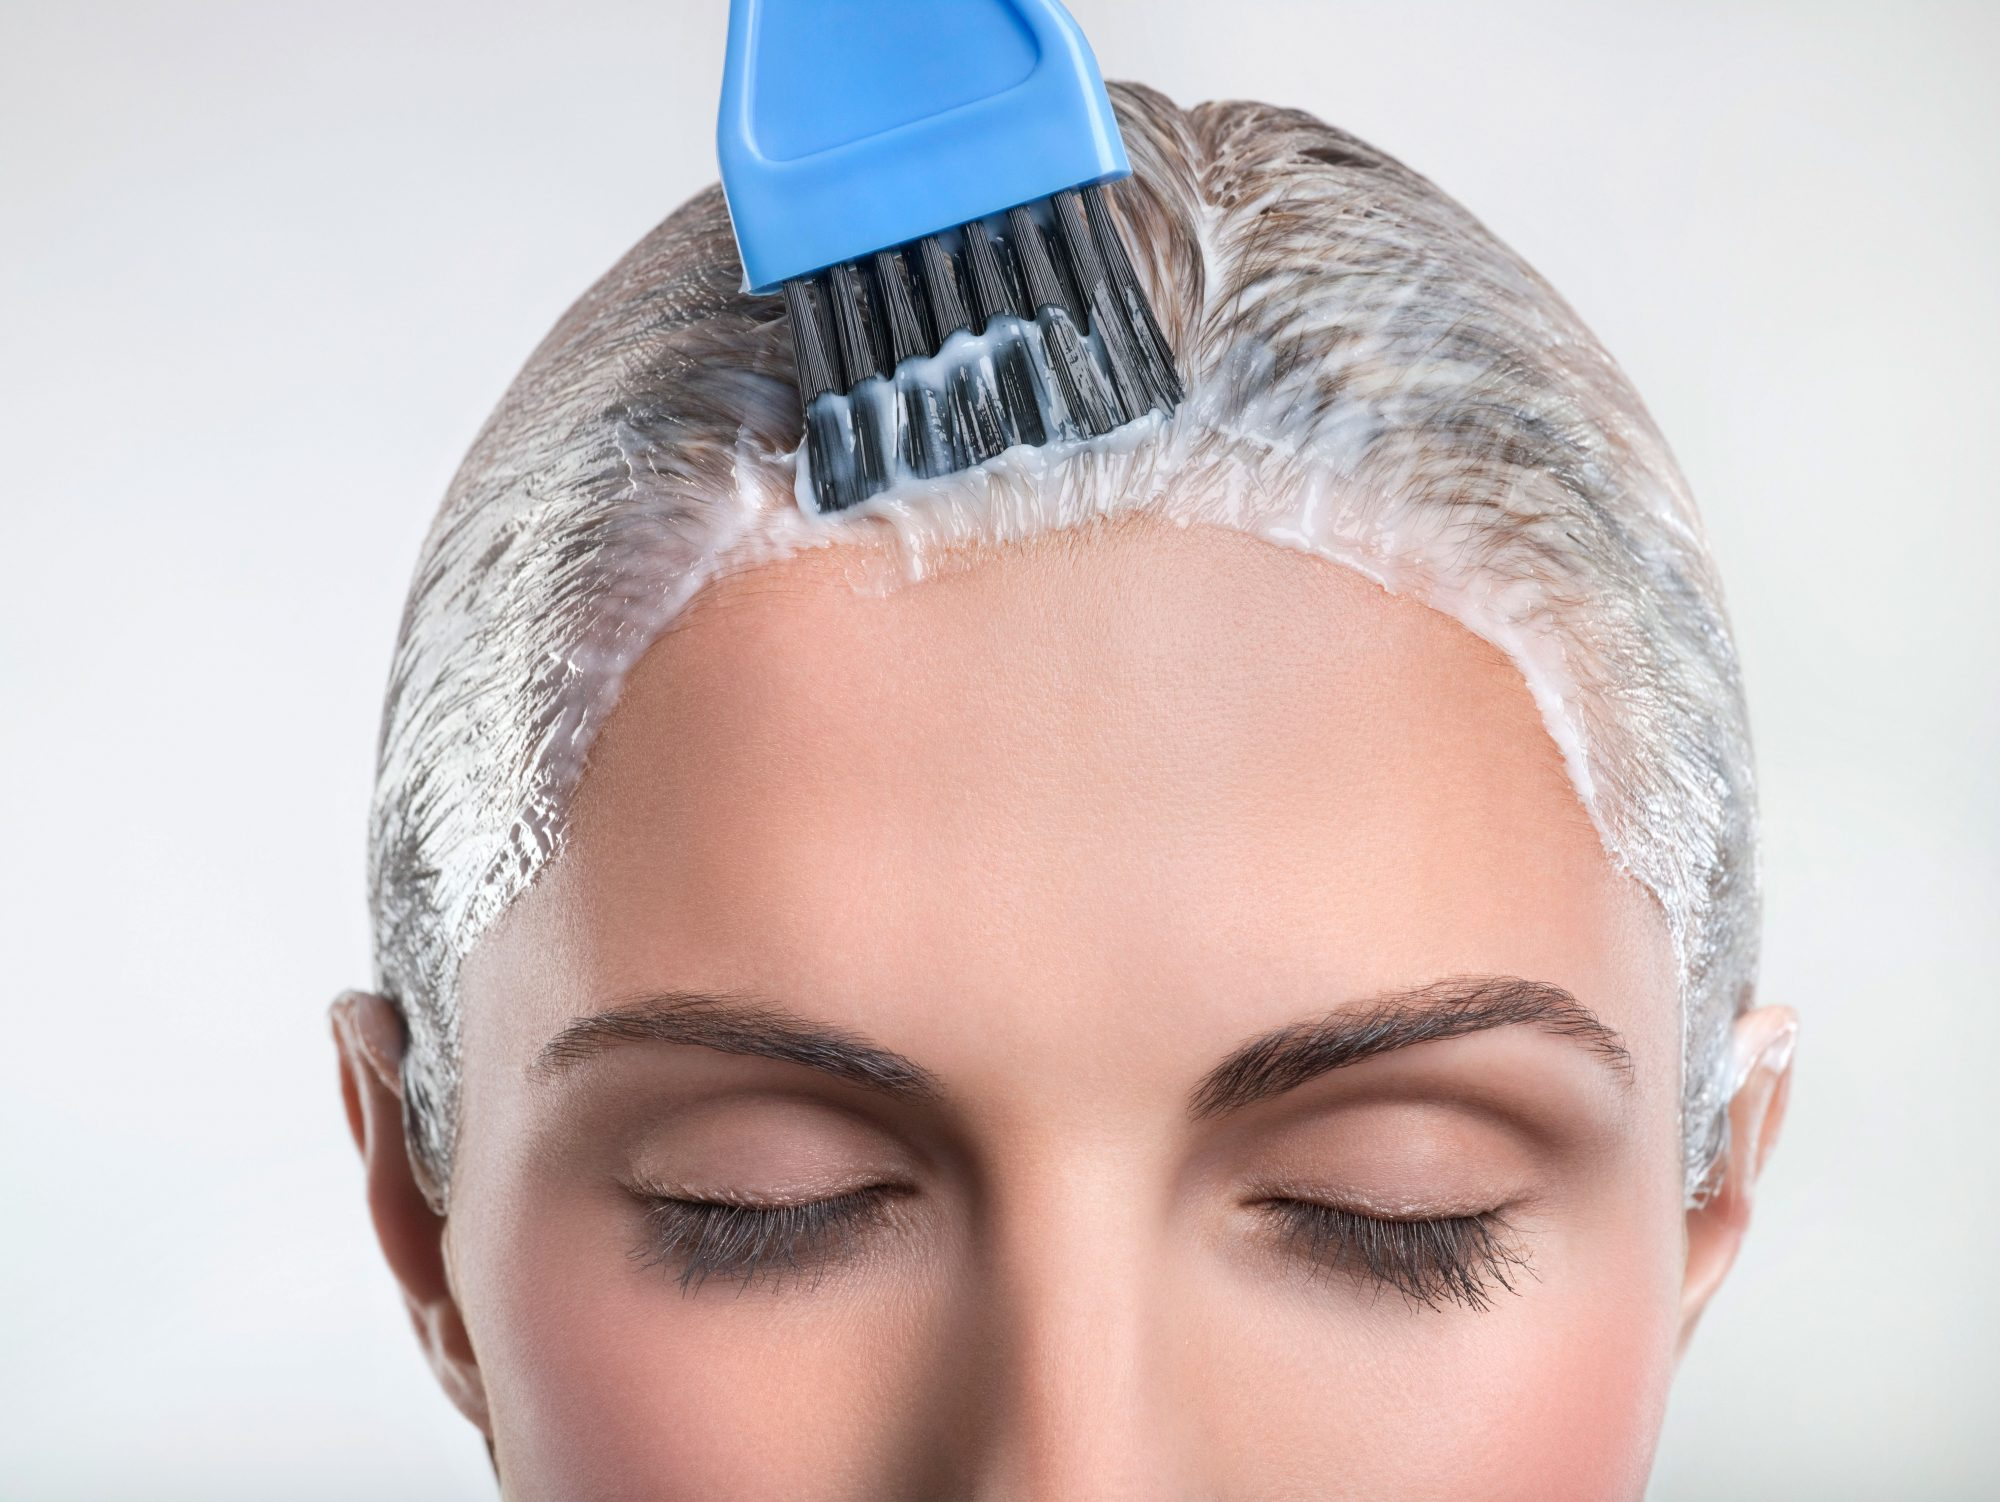 Woman Applying Hair Dye